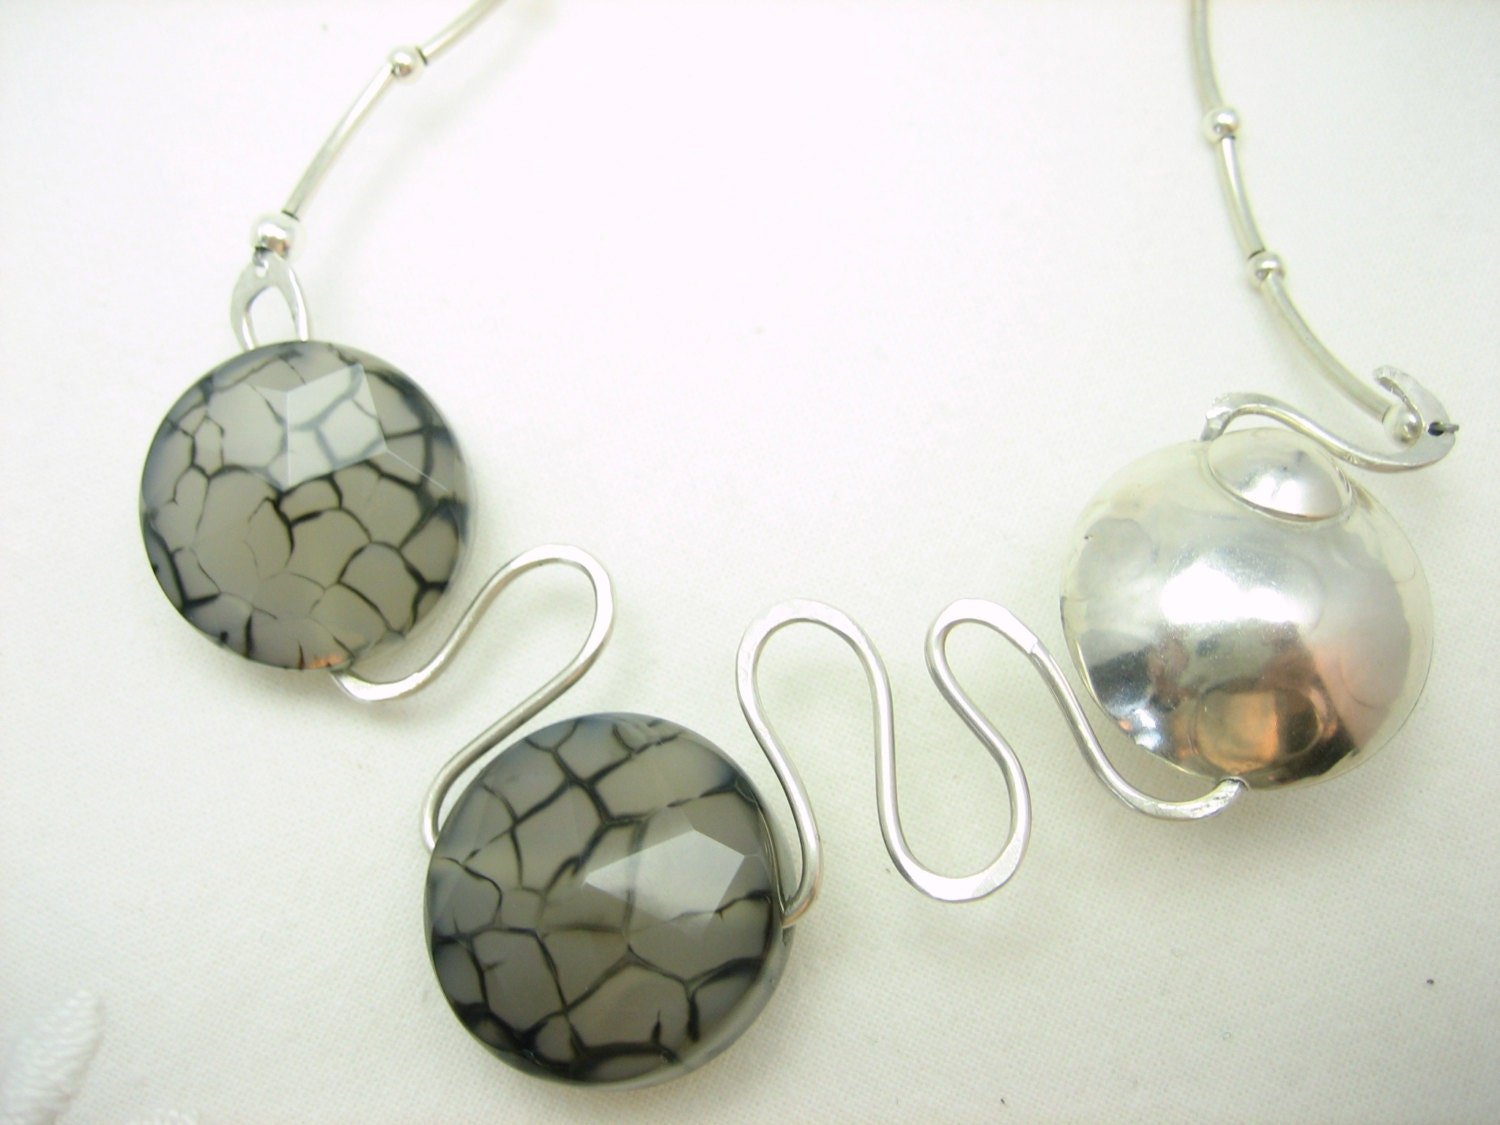 Unique hammered silver necklace with gray and black cracked agate, polka dotted silver bead-artisan made agate and hammered silver necklace